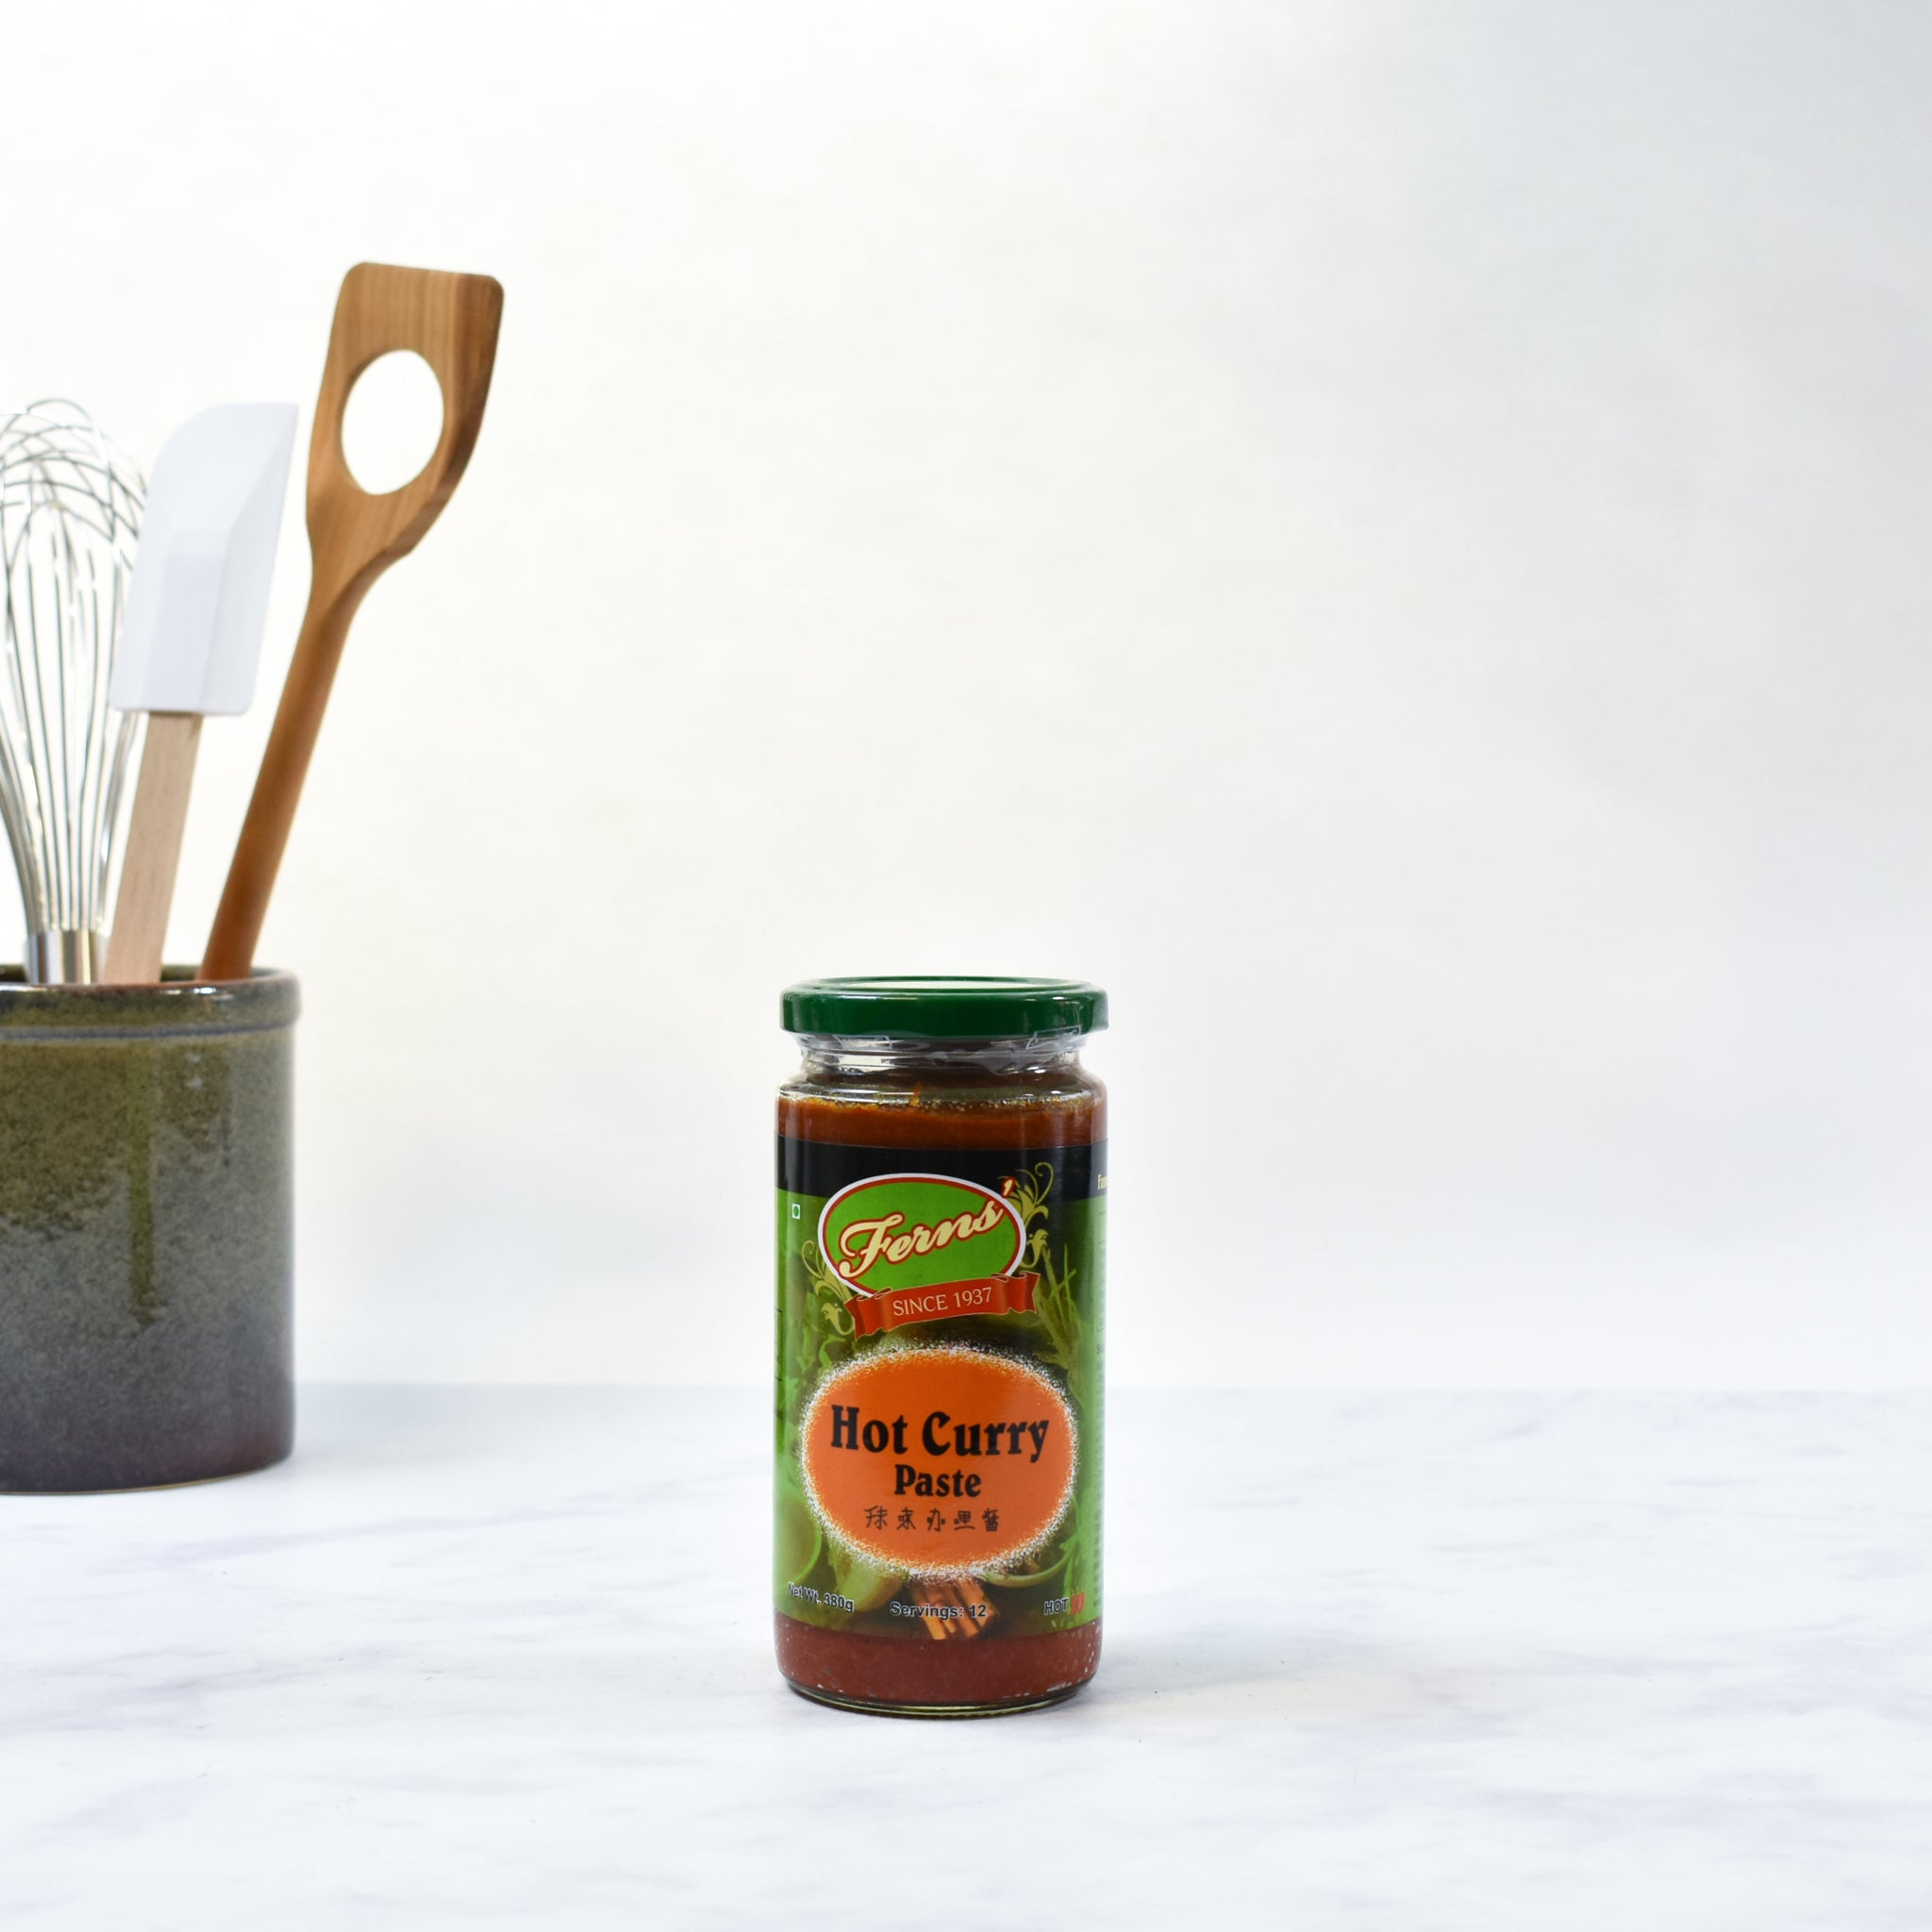 Ferns' Hot Curry Paste 380g lifestyle photograph